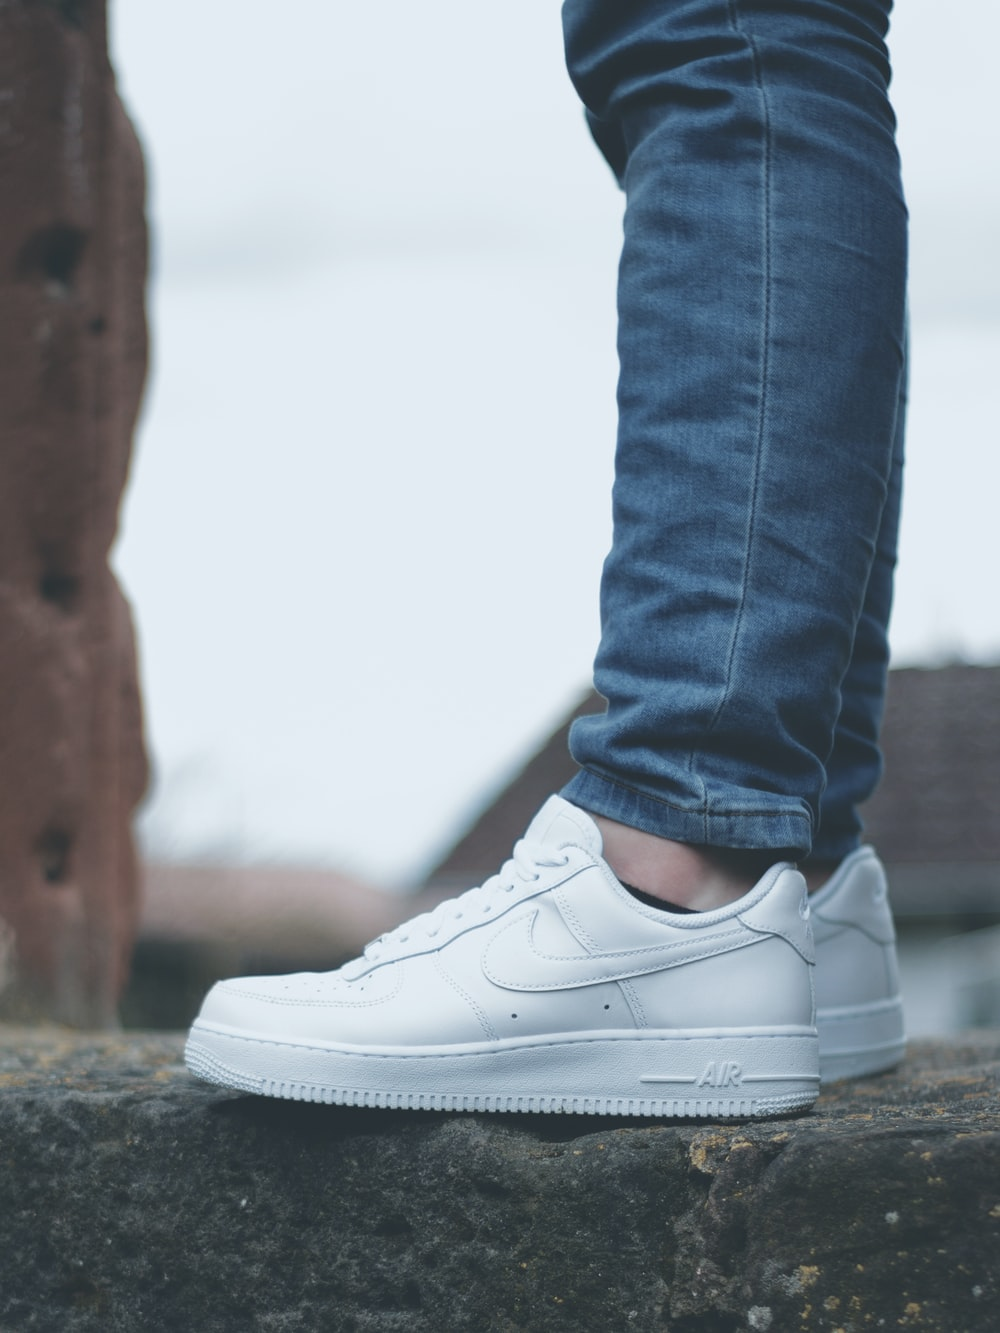 Inevitable Mezquita enero  Nike Air Force 1 Pictures | Download Free Images on Unsplash